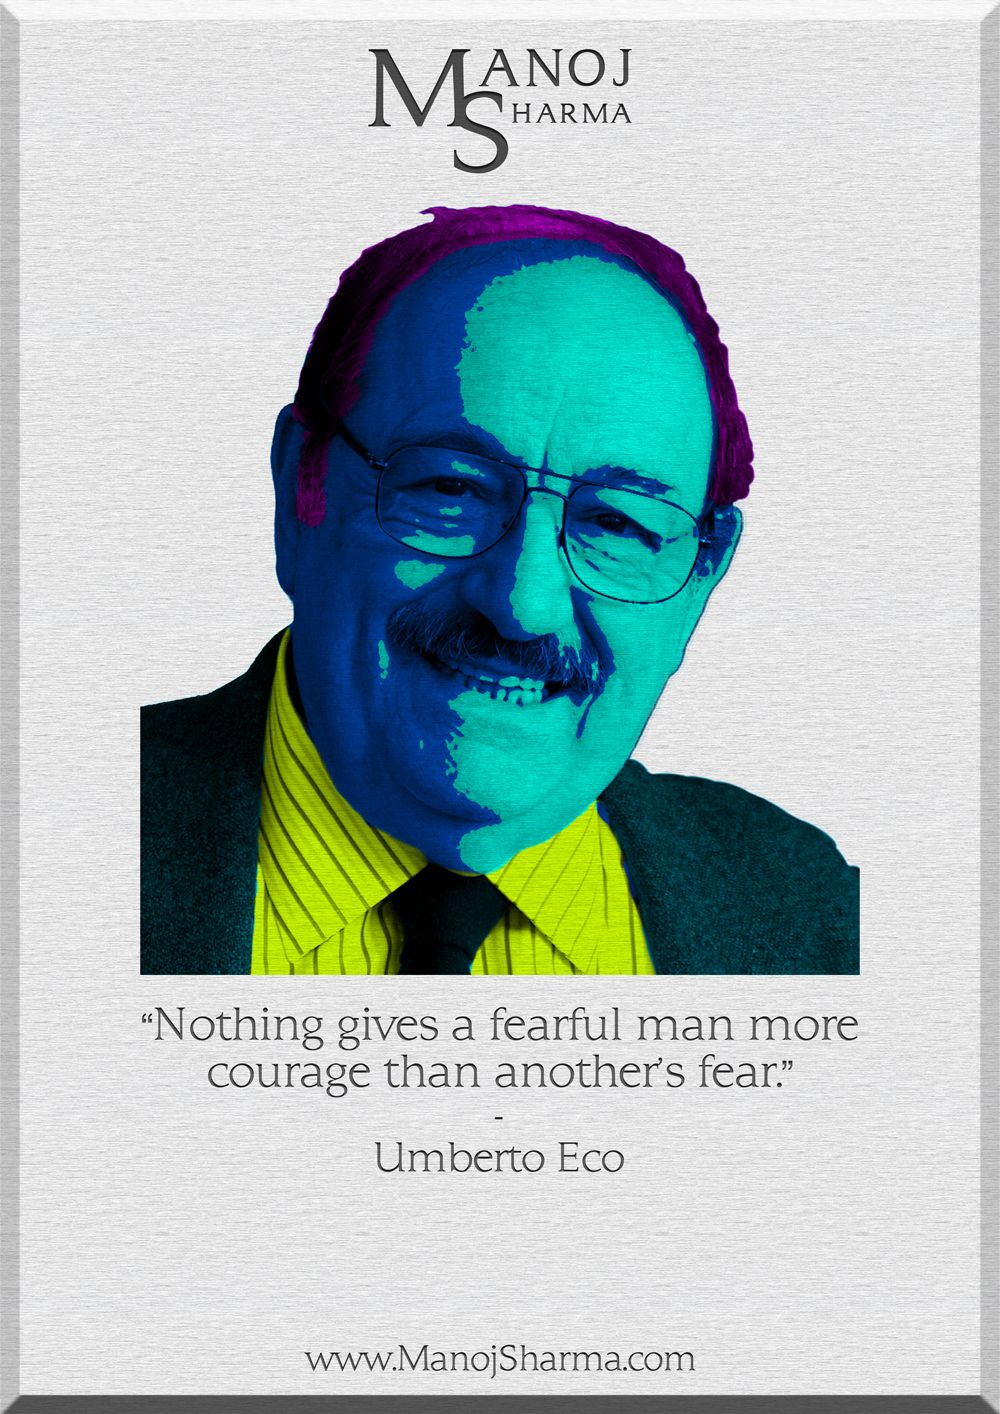 """Umberto Eco - Manoj Sharma    """"Nothing gives a fearful man more courage than another's fear."""""""